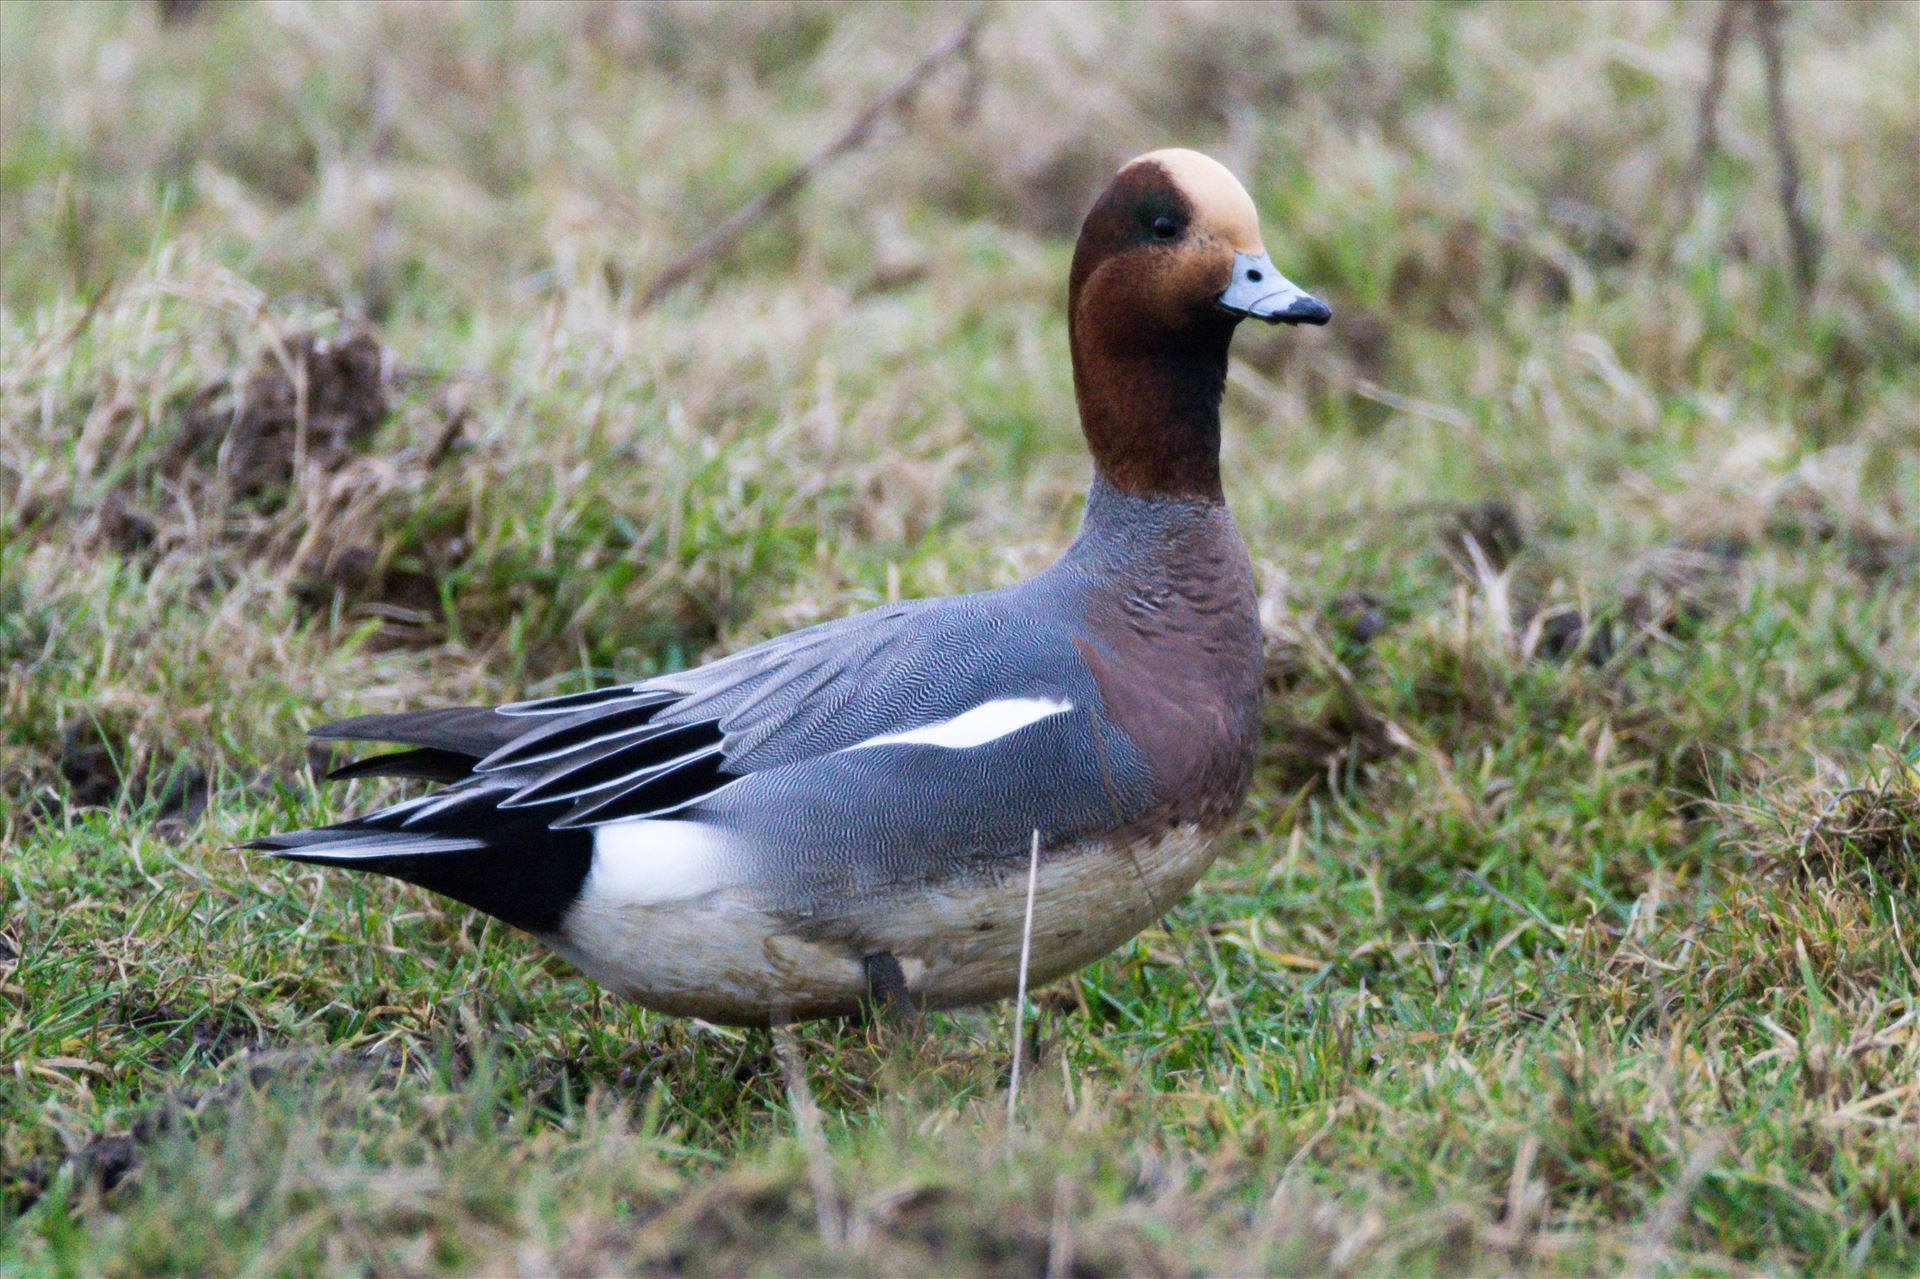 Wigeon, Taken at North Gare, Seaton - A Wigeon taken at North Gare, Seaton by AJ Stoves Photography